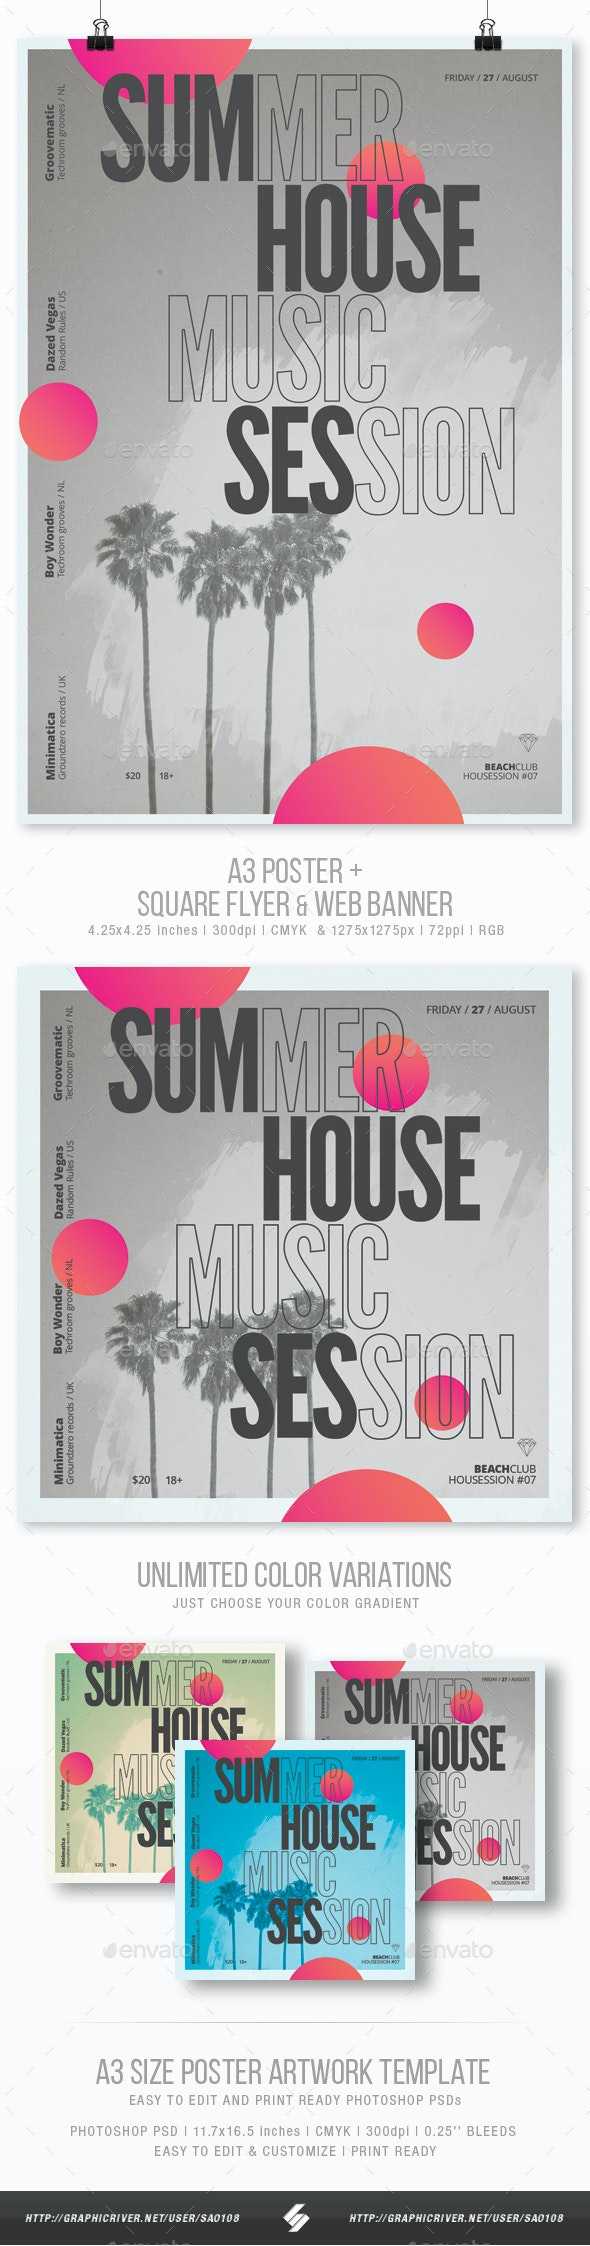 Summer House Session - Party Flyer / Poster Template A3 - Clubs & Parties Events